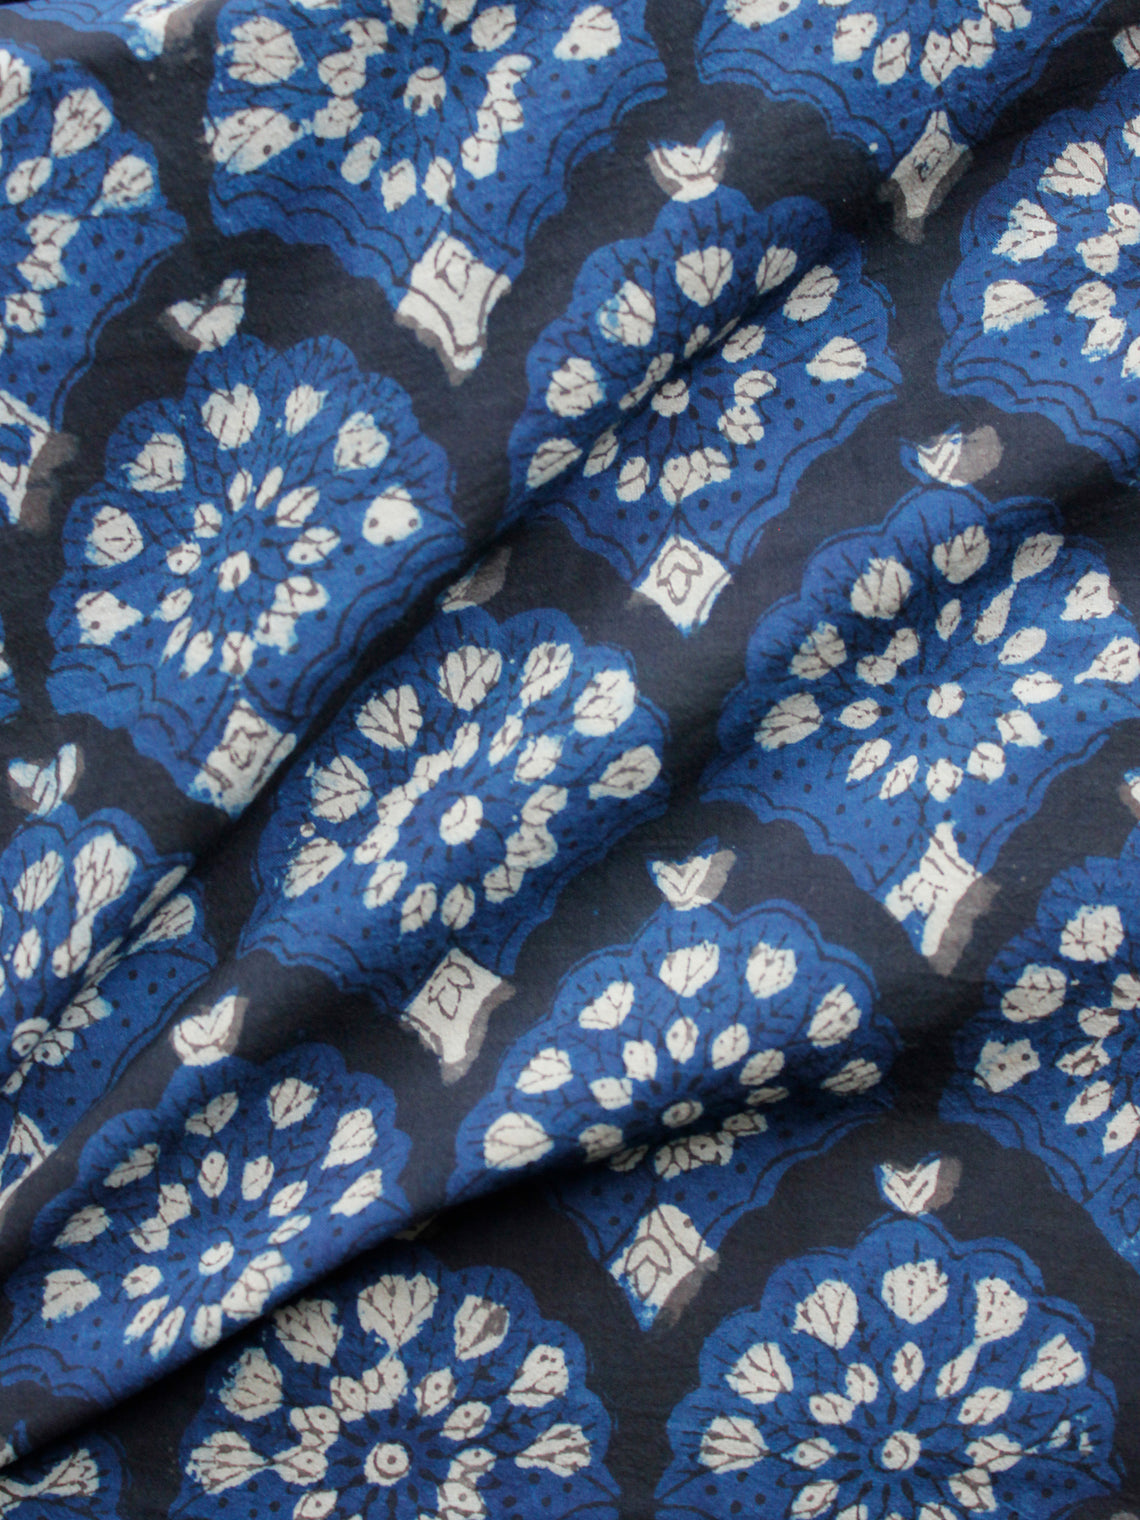 Black Indigo White Hand Block Printed Cotton Fabric Per Meter - F001F1730